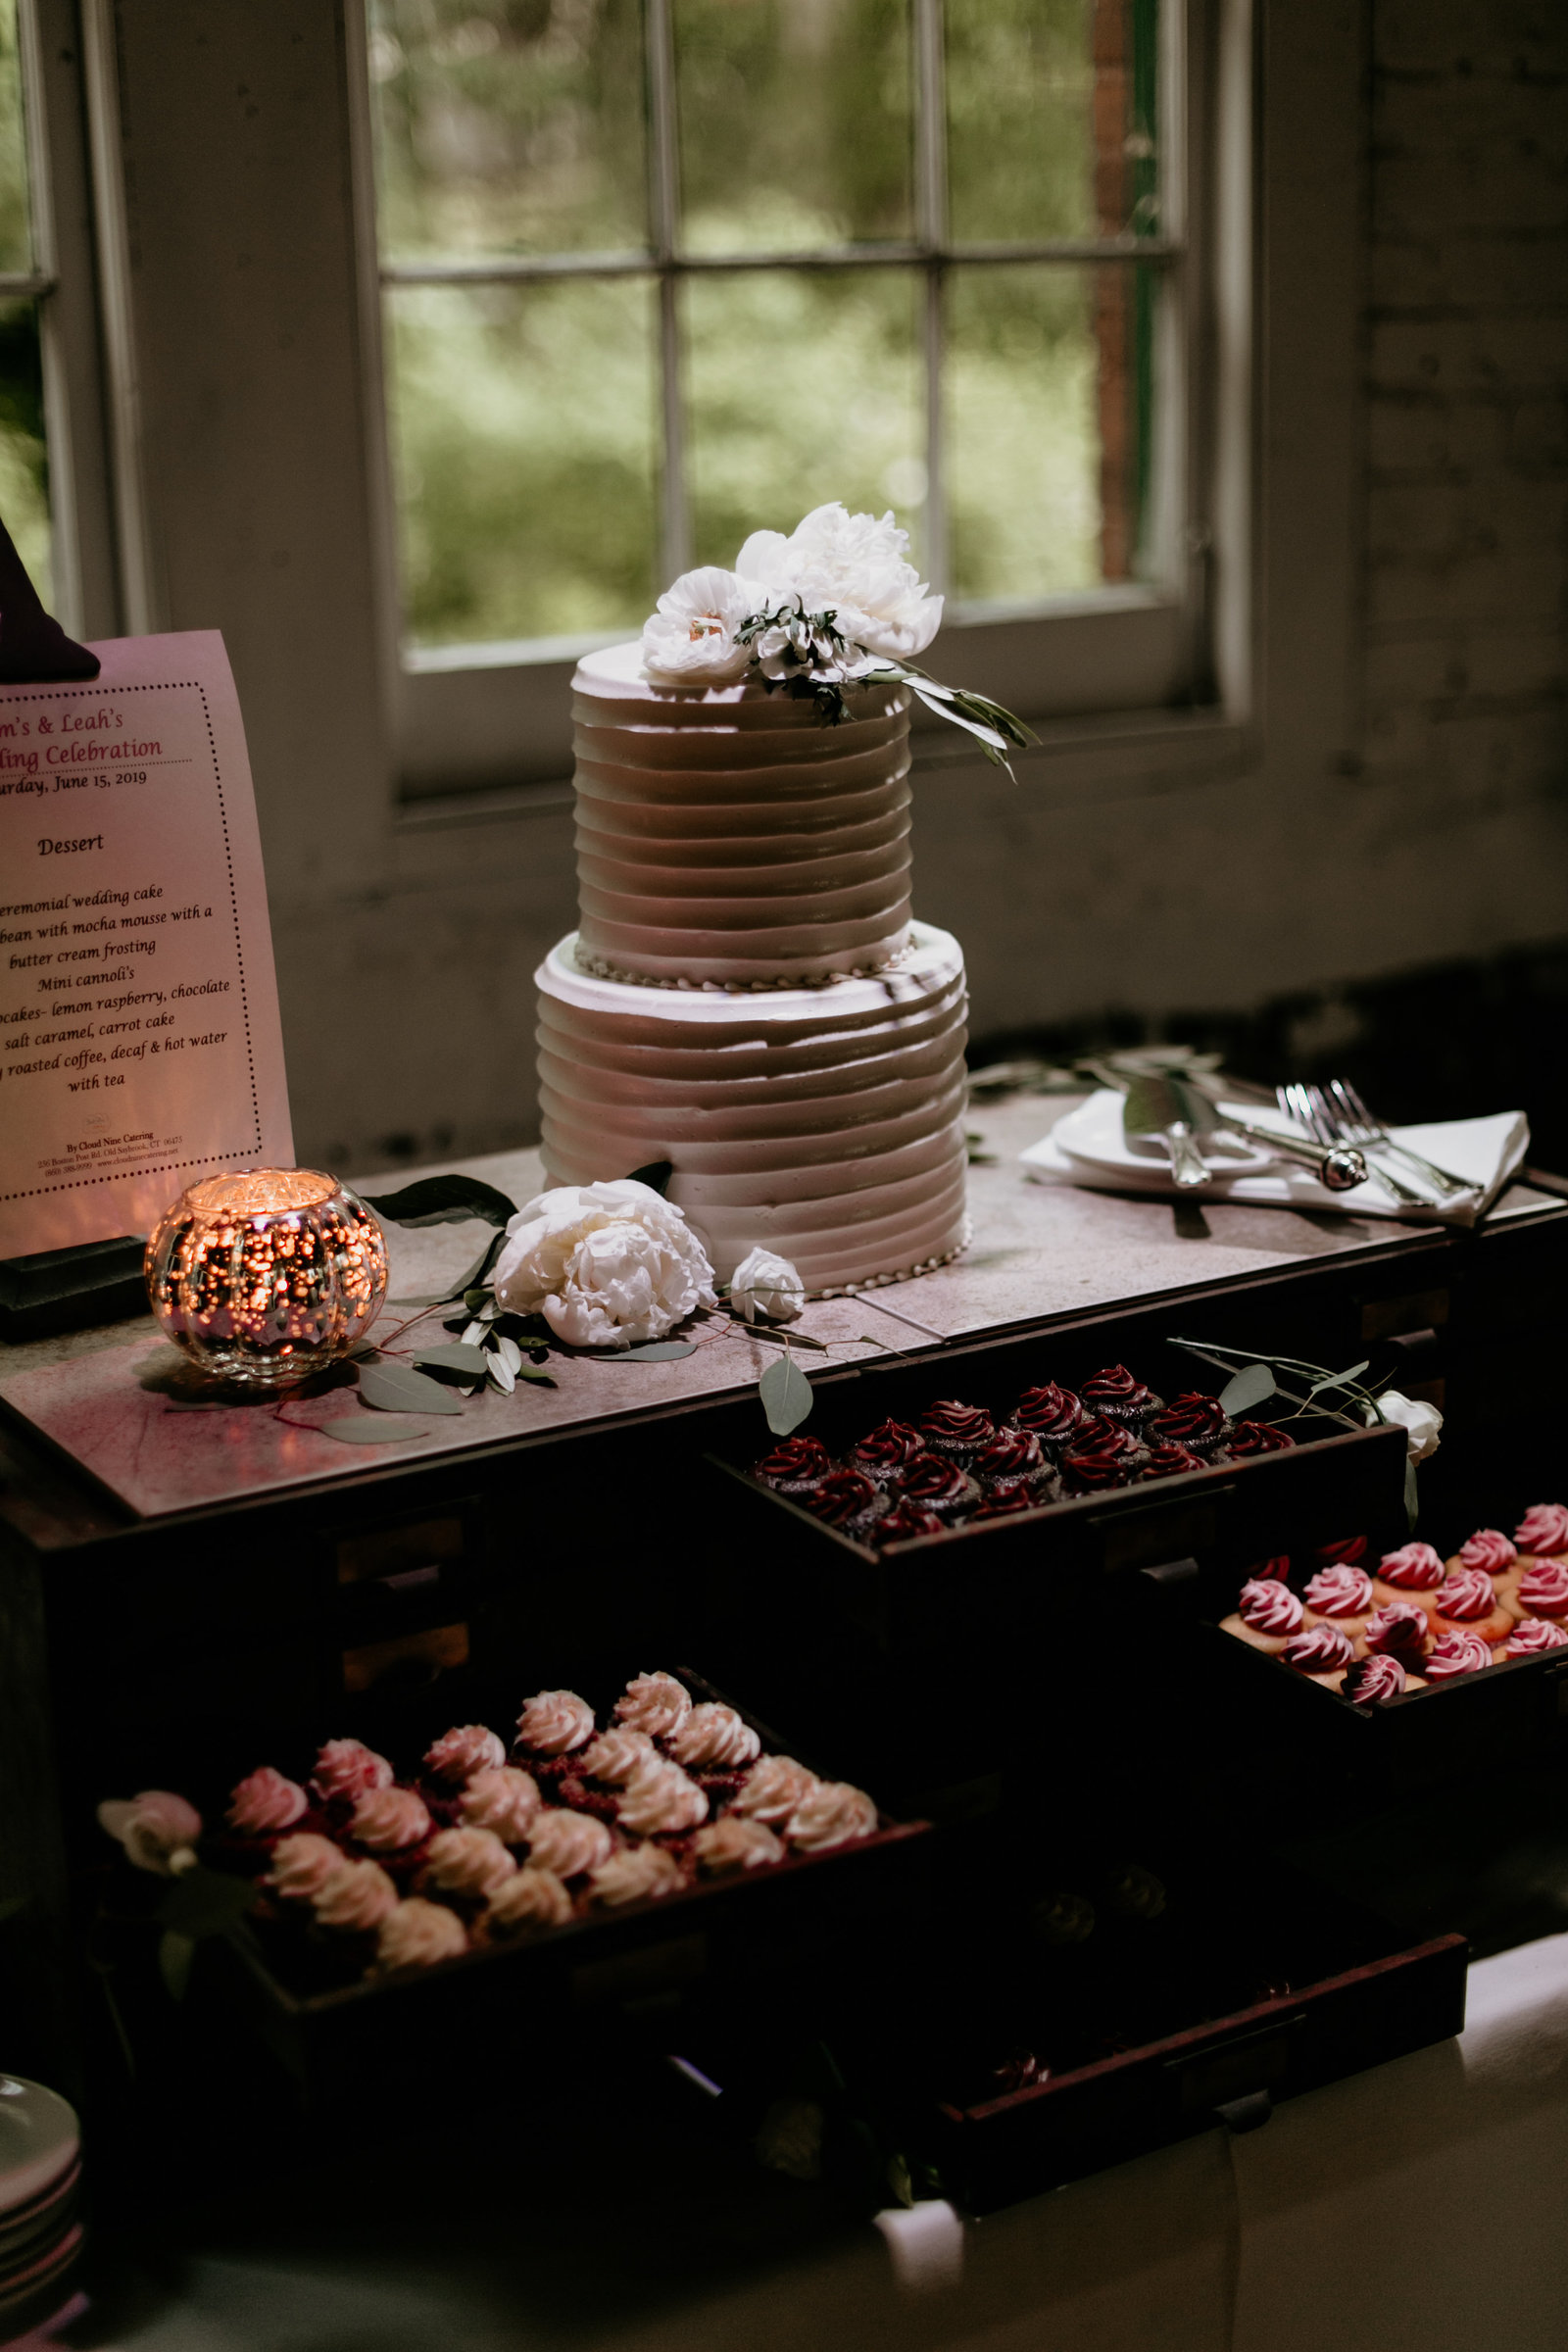 Wedding cake and dessert table.